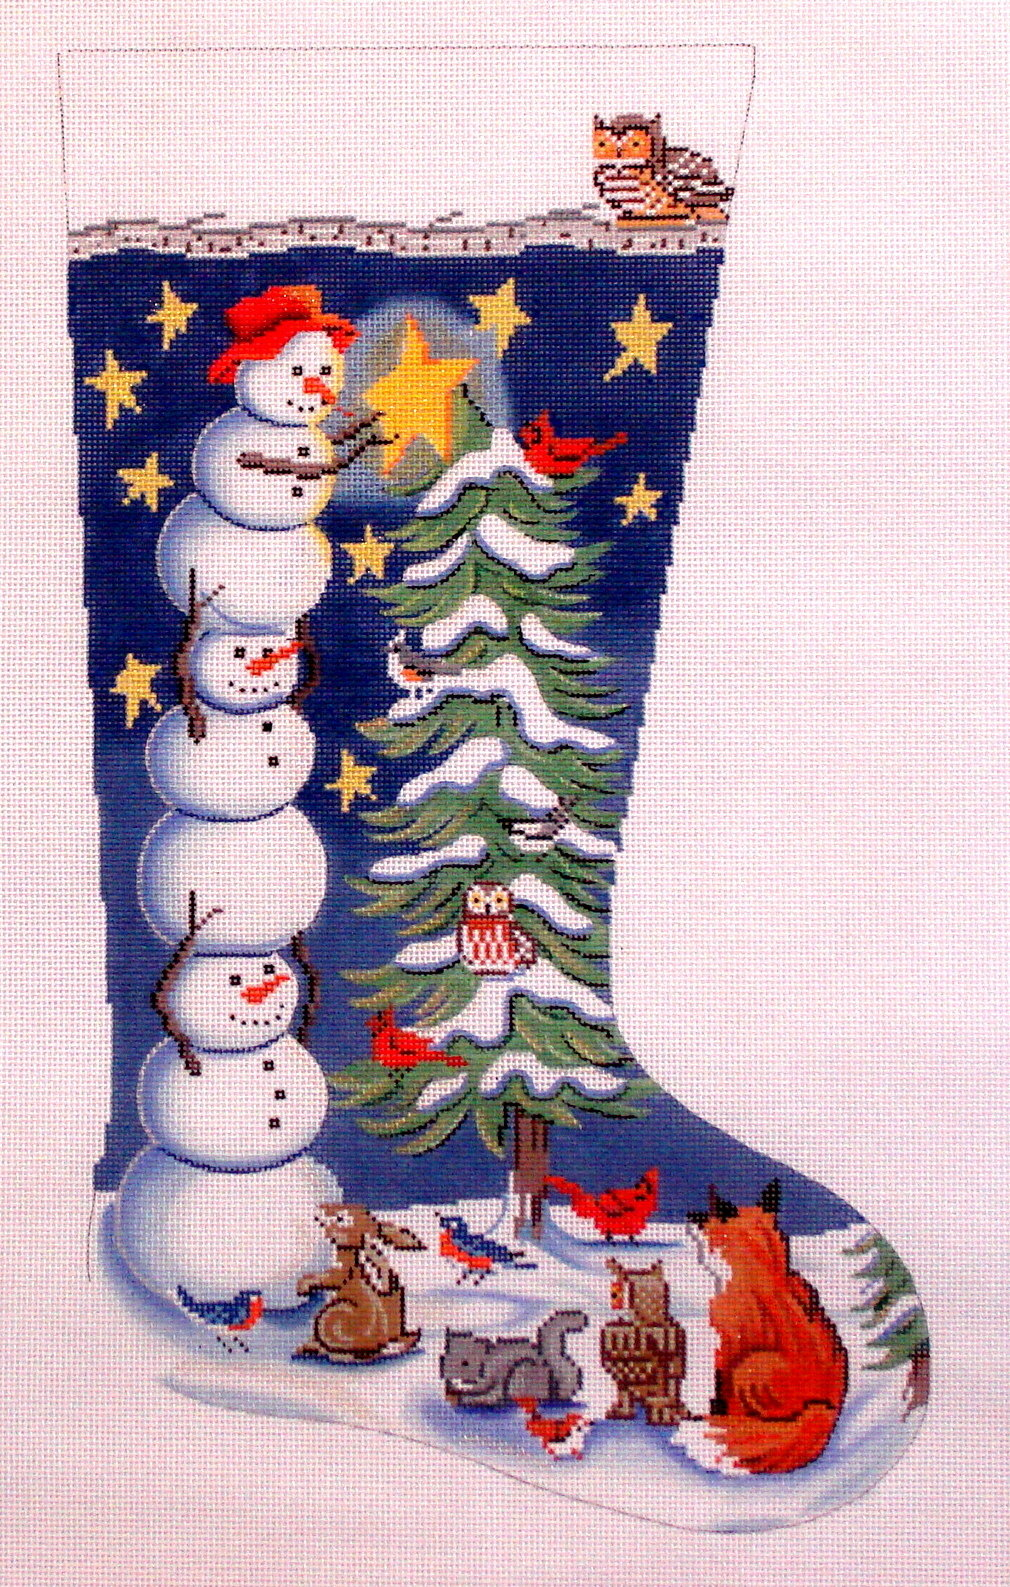 Tree Trimming Snowman Stocking   (Handpainted by Alice Peterson) 18*2899